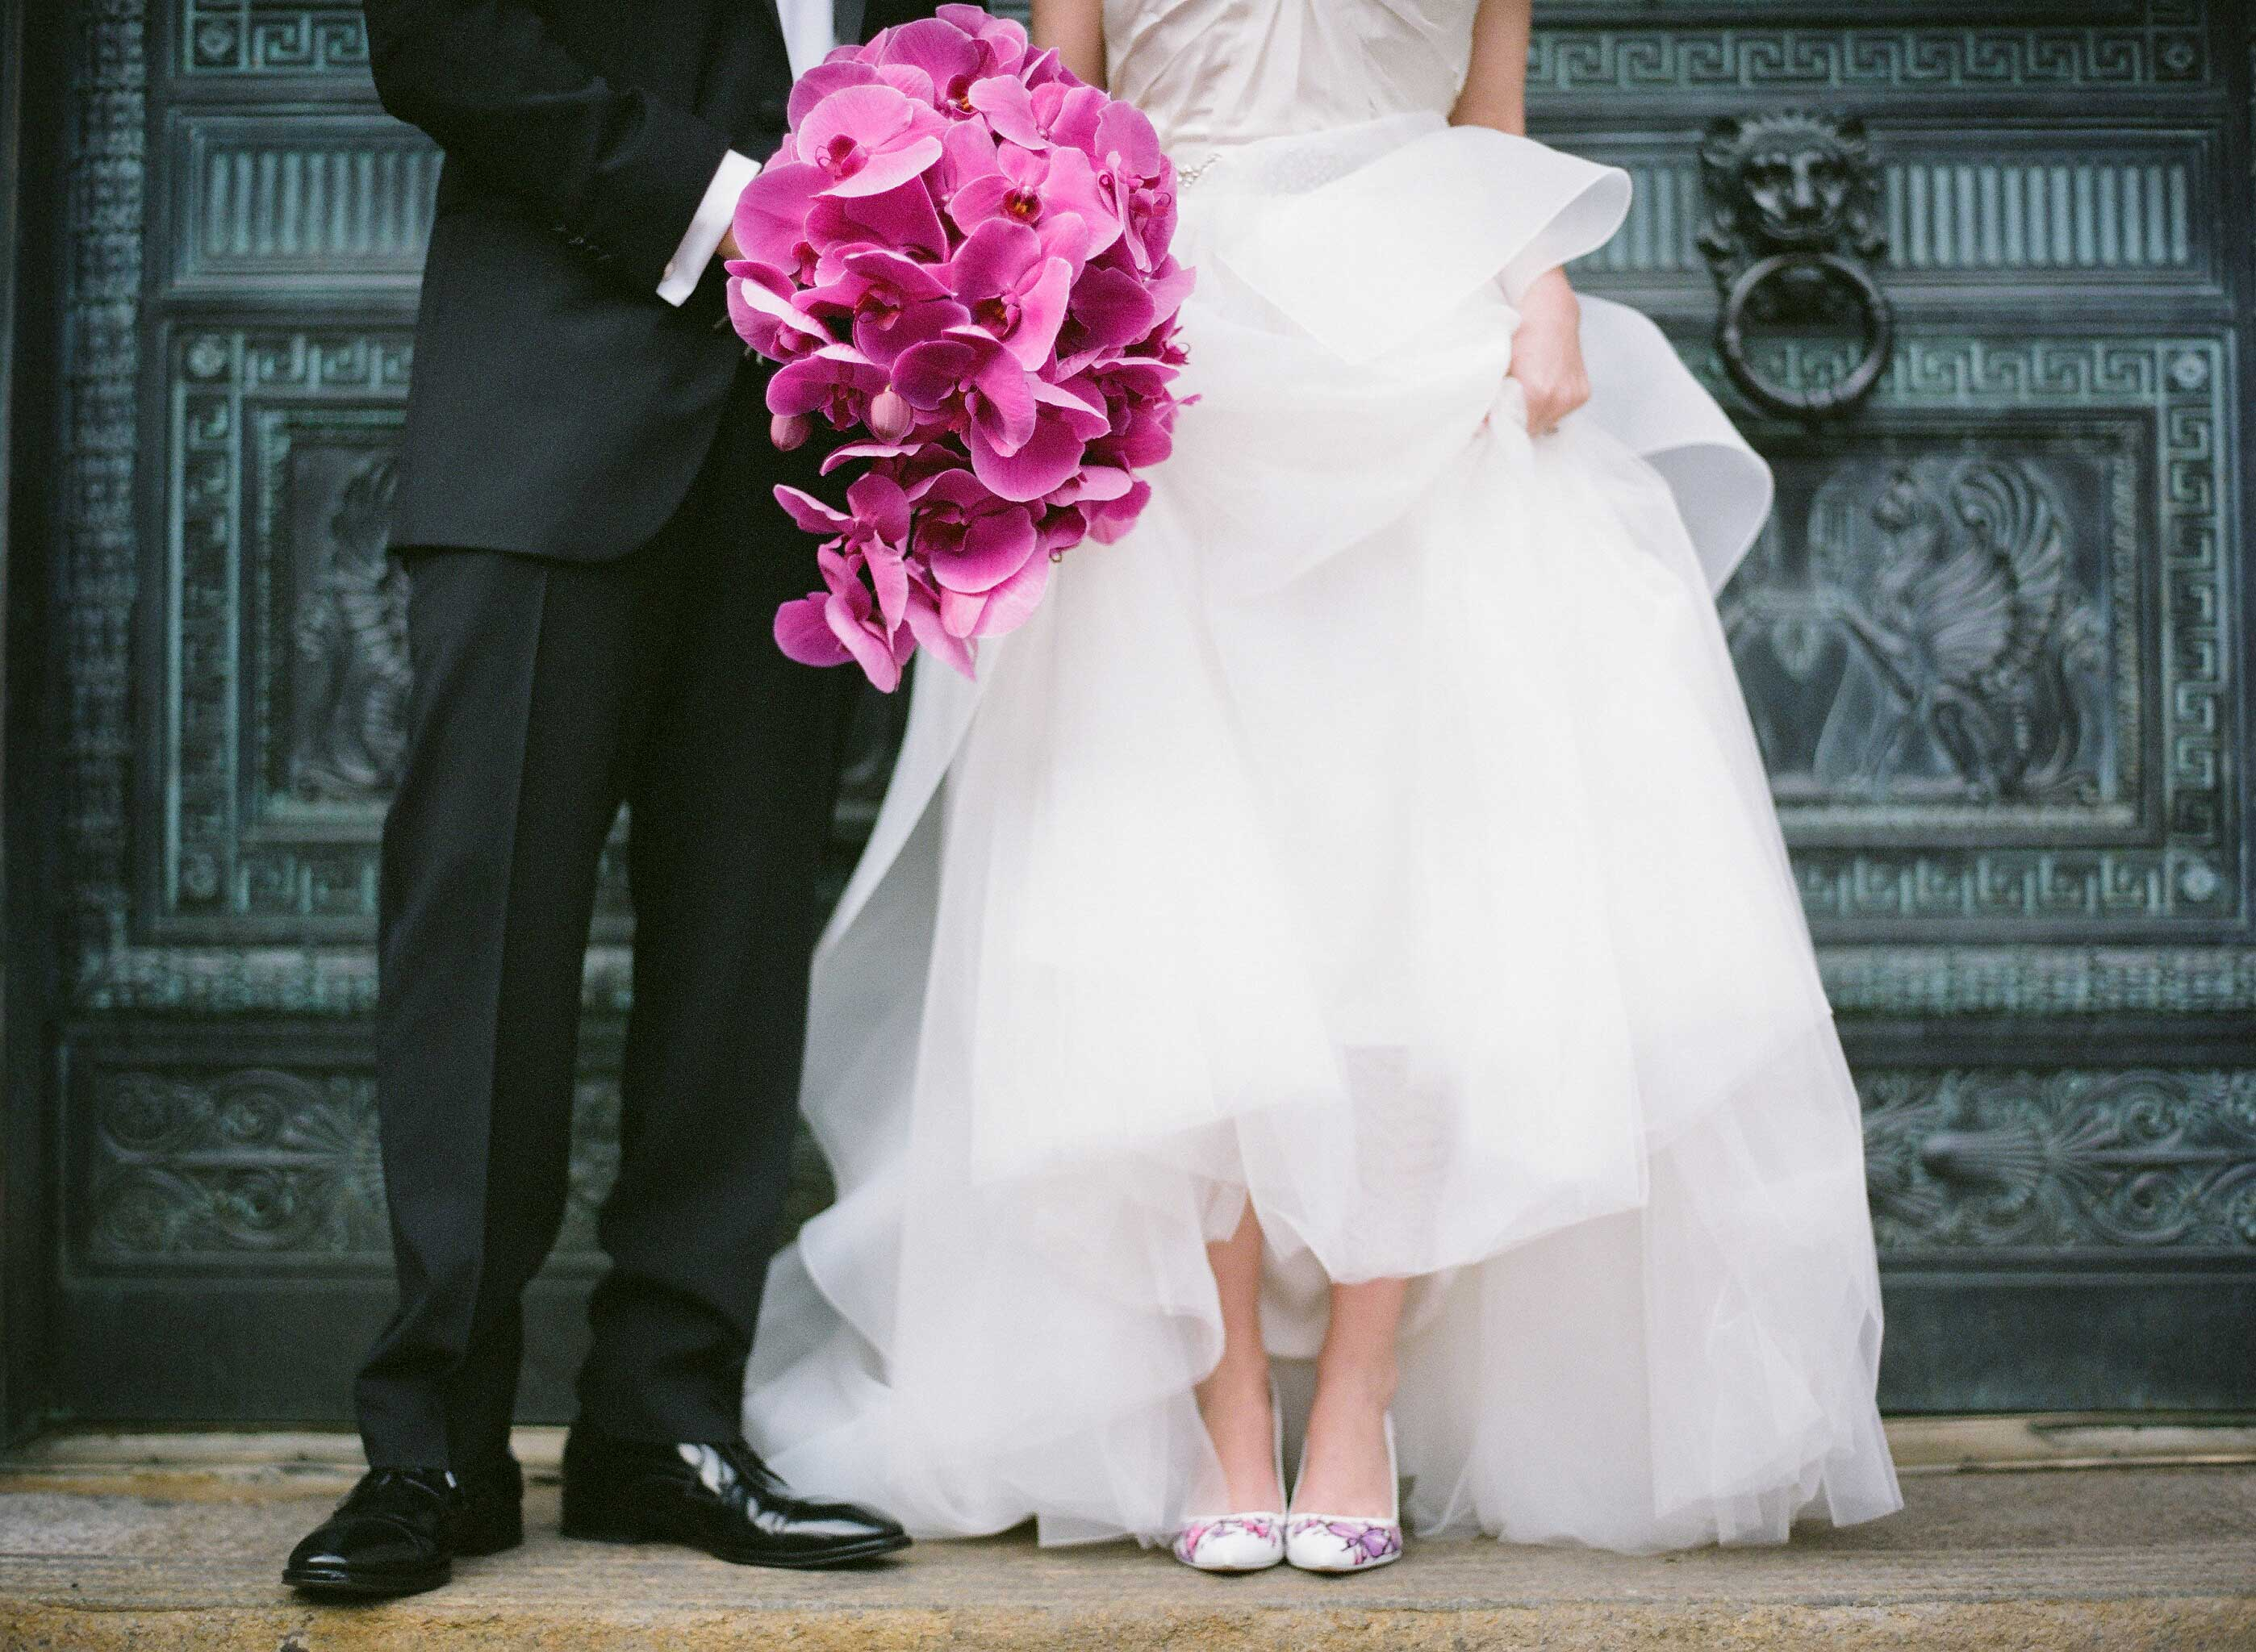 Wedding Ideas: Fuchsia Wedding Color Palette Ideas - Inside Weddings